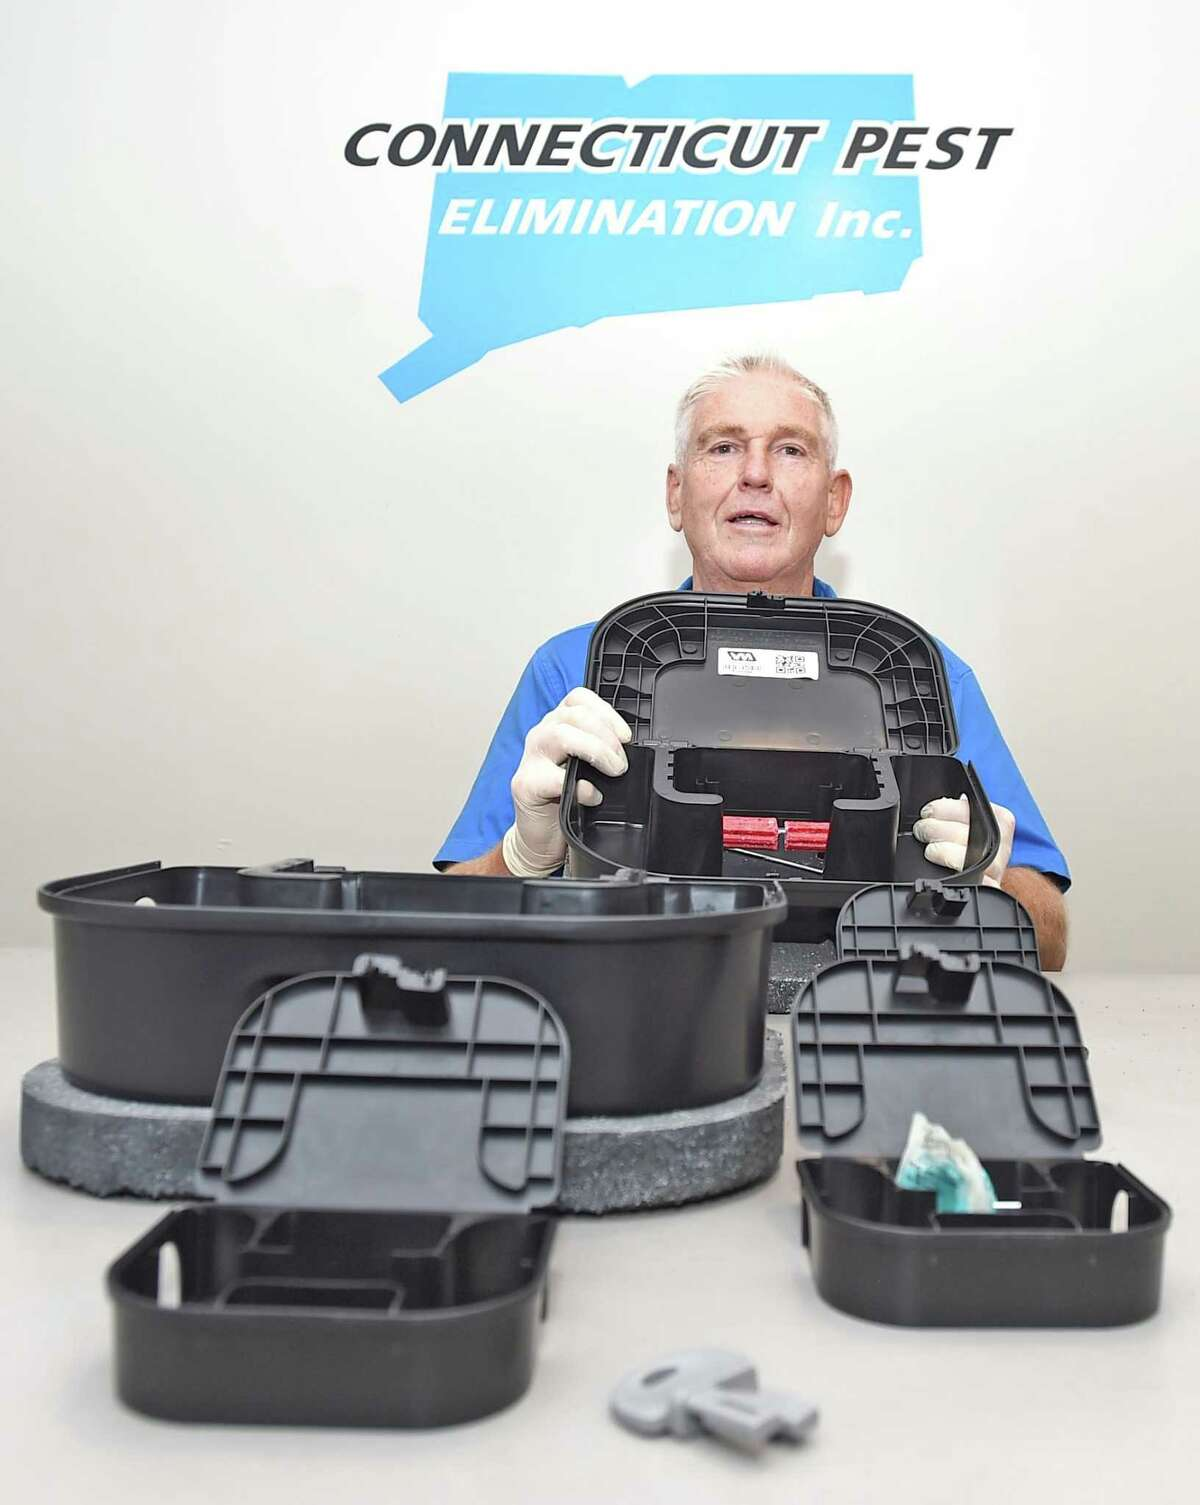 Orange, Connecticut - Saturday, August 29, 2020: Michael J. Lipsett, President of Connecticut Pest Elimination Inc. of Orange with exterior weighted mice and rat tamper resistant bait stations and interior mice bait boxes. The boxes hold skewered anti-coagulant rodenticide.